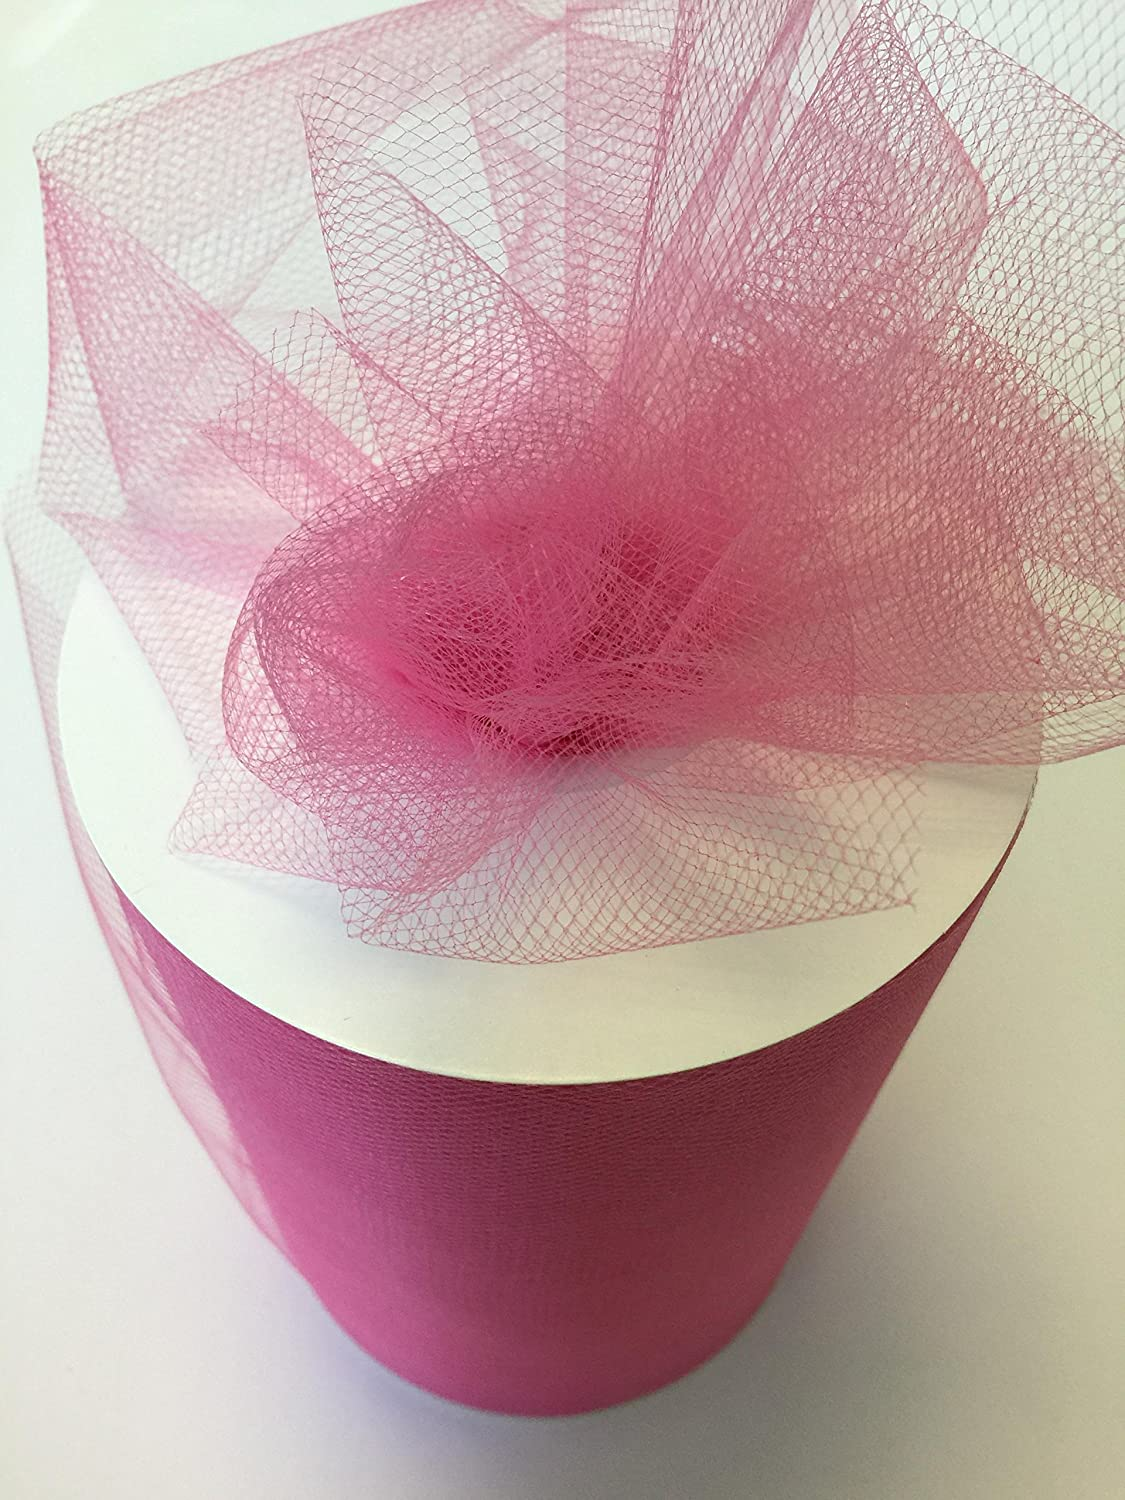 On Sale Now! 34 Colors Available 300 feet fuchsia Tulle Fabric Spool//Roll 6 inch x 100 yards